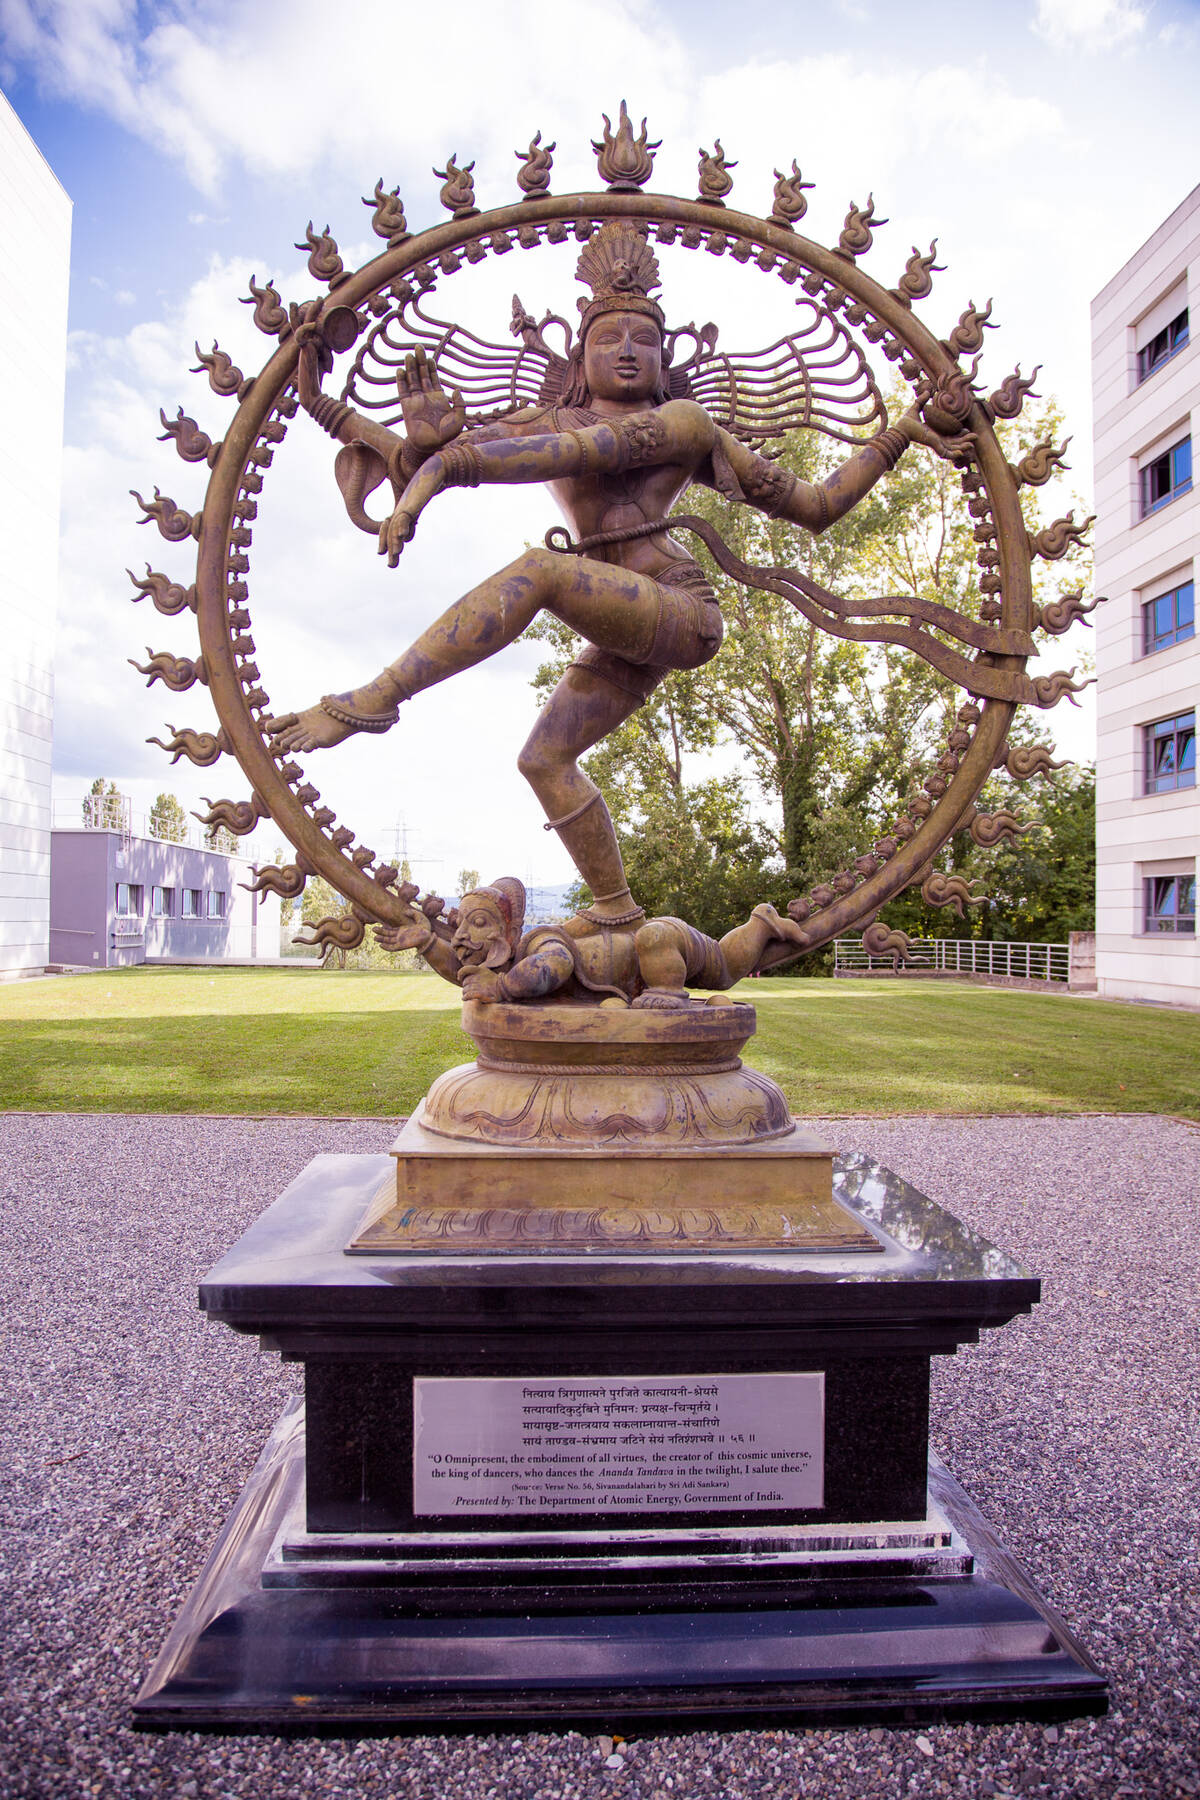 Shivas statue at CERN engaging in the Nataraja dance